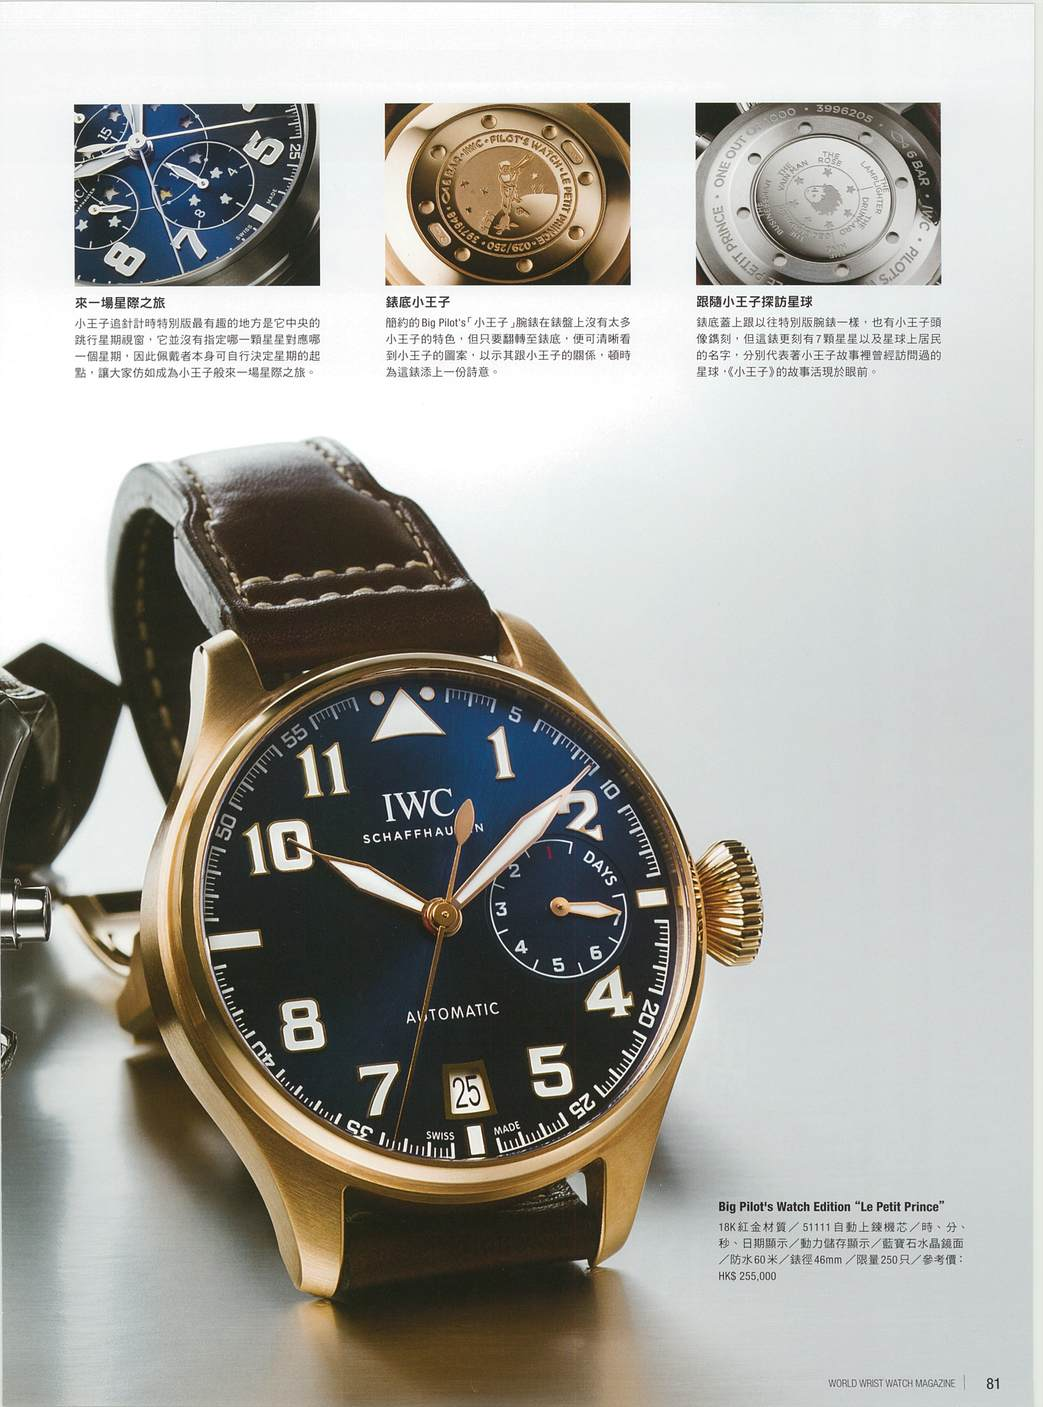 20160101_World Wrist Watch Magazine_P074-081_8_201601019987929.JPG